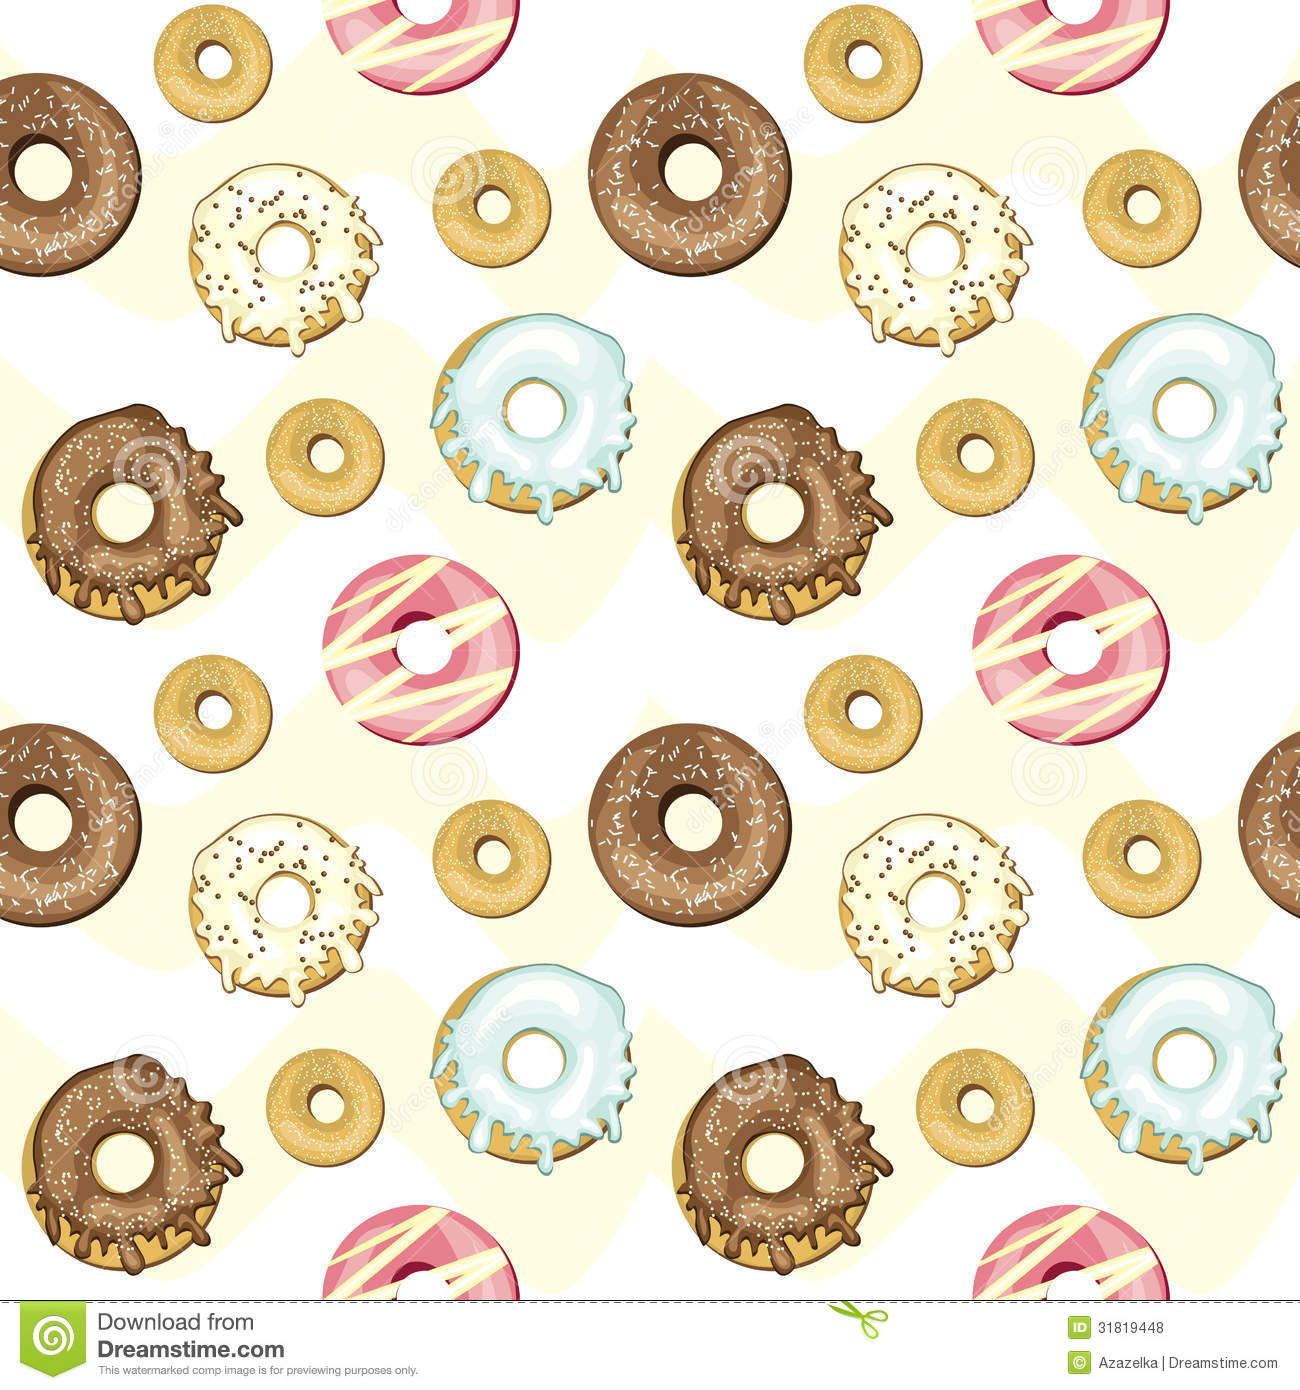 Doughnut clipart background free. Download clip